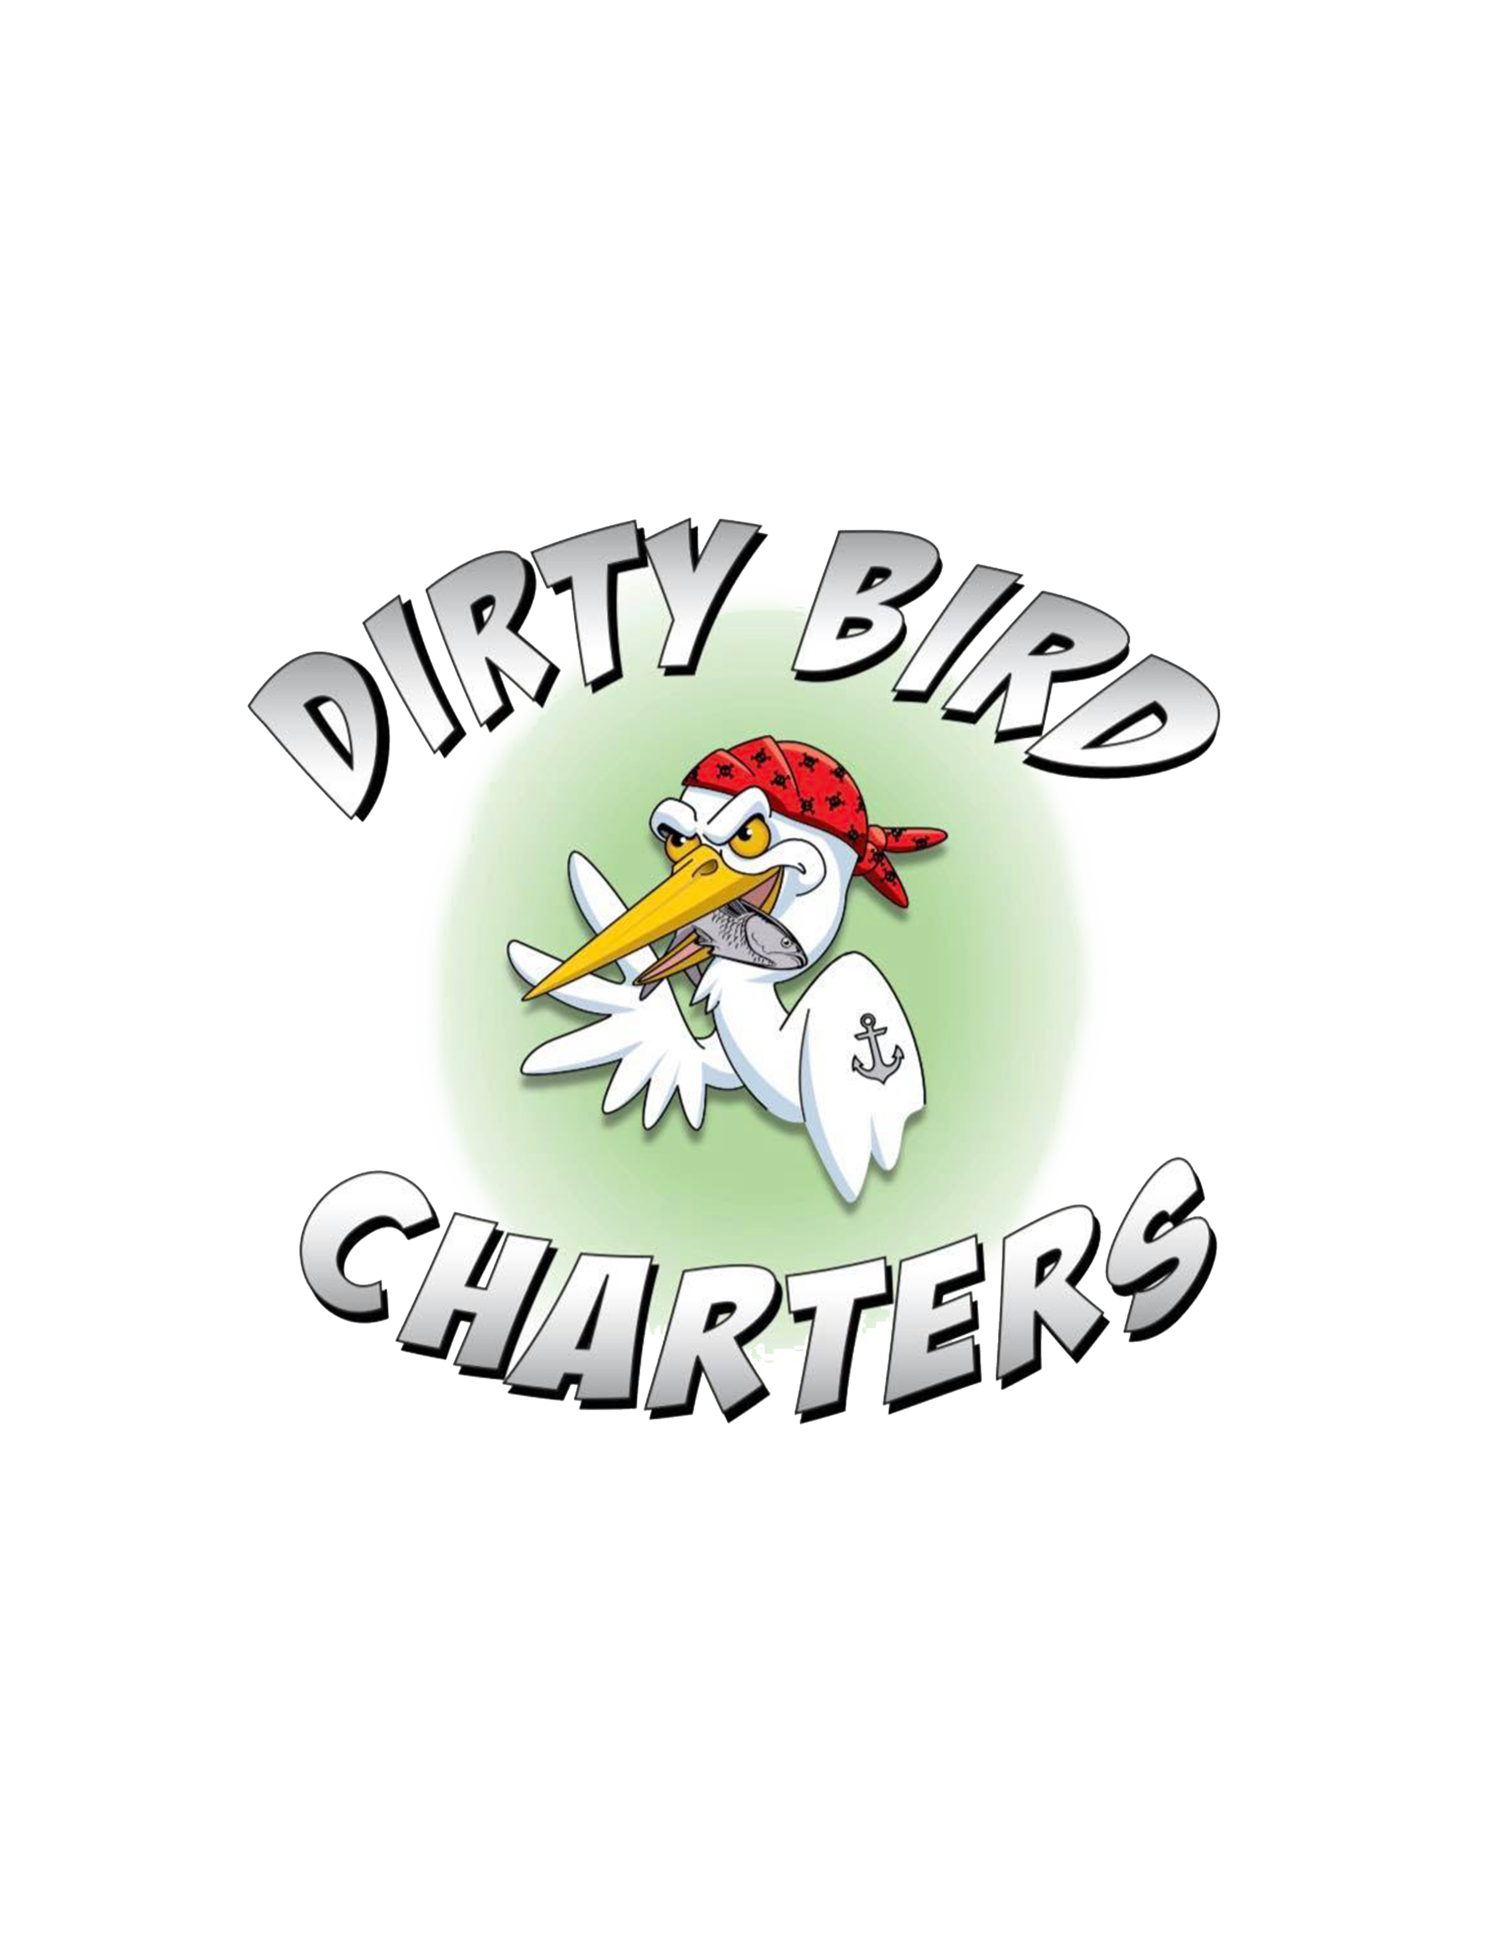 Dirty Bird Charters